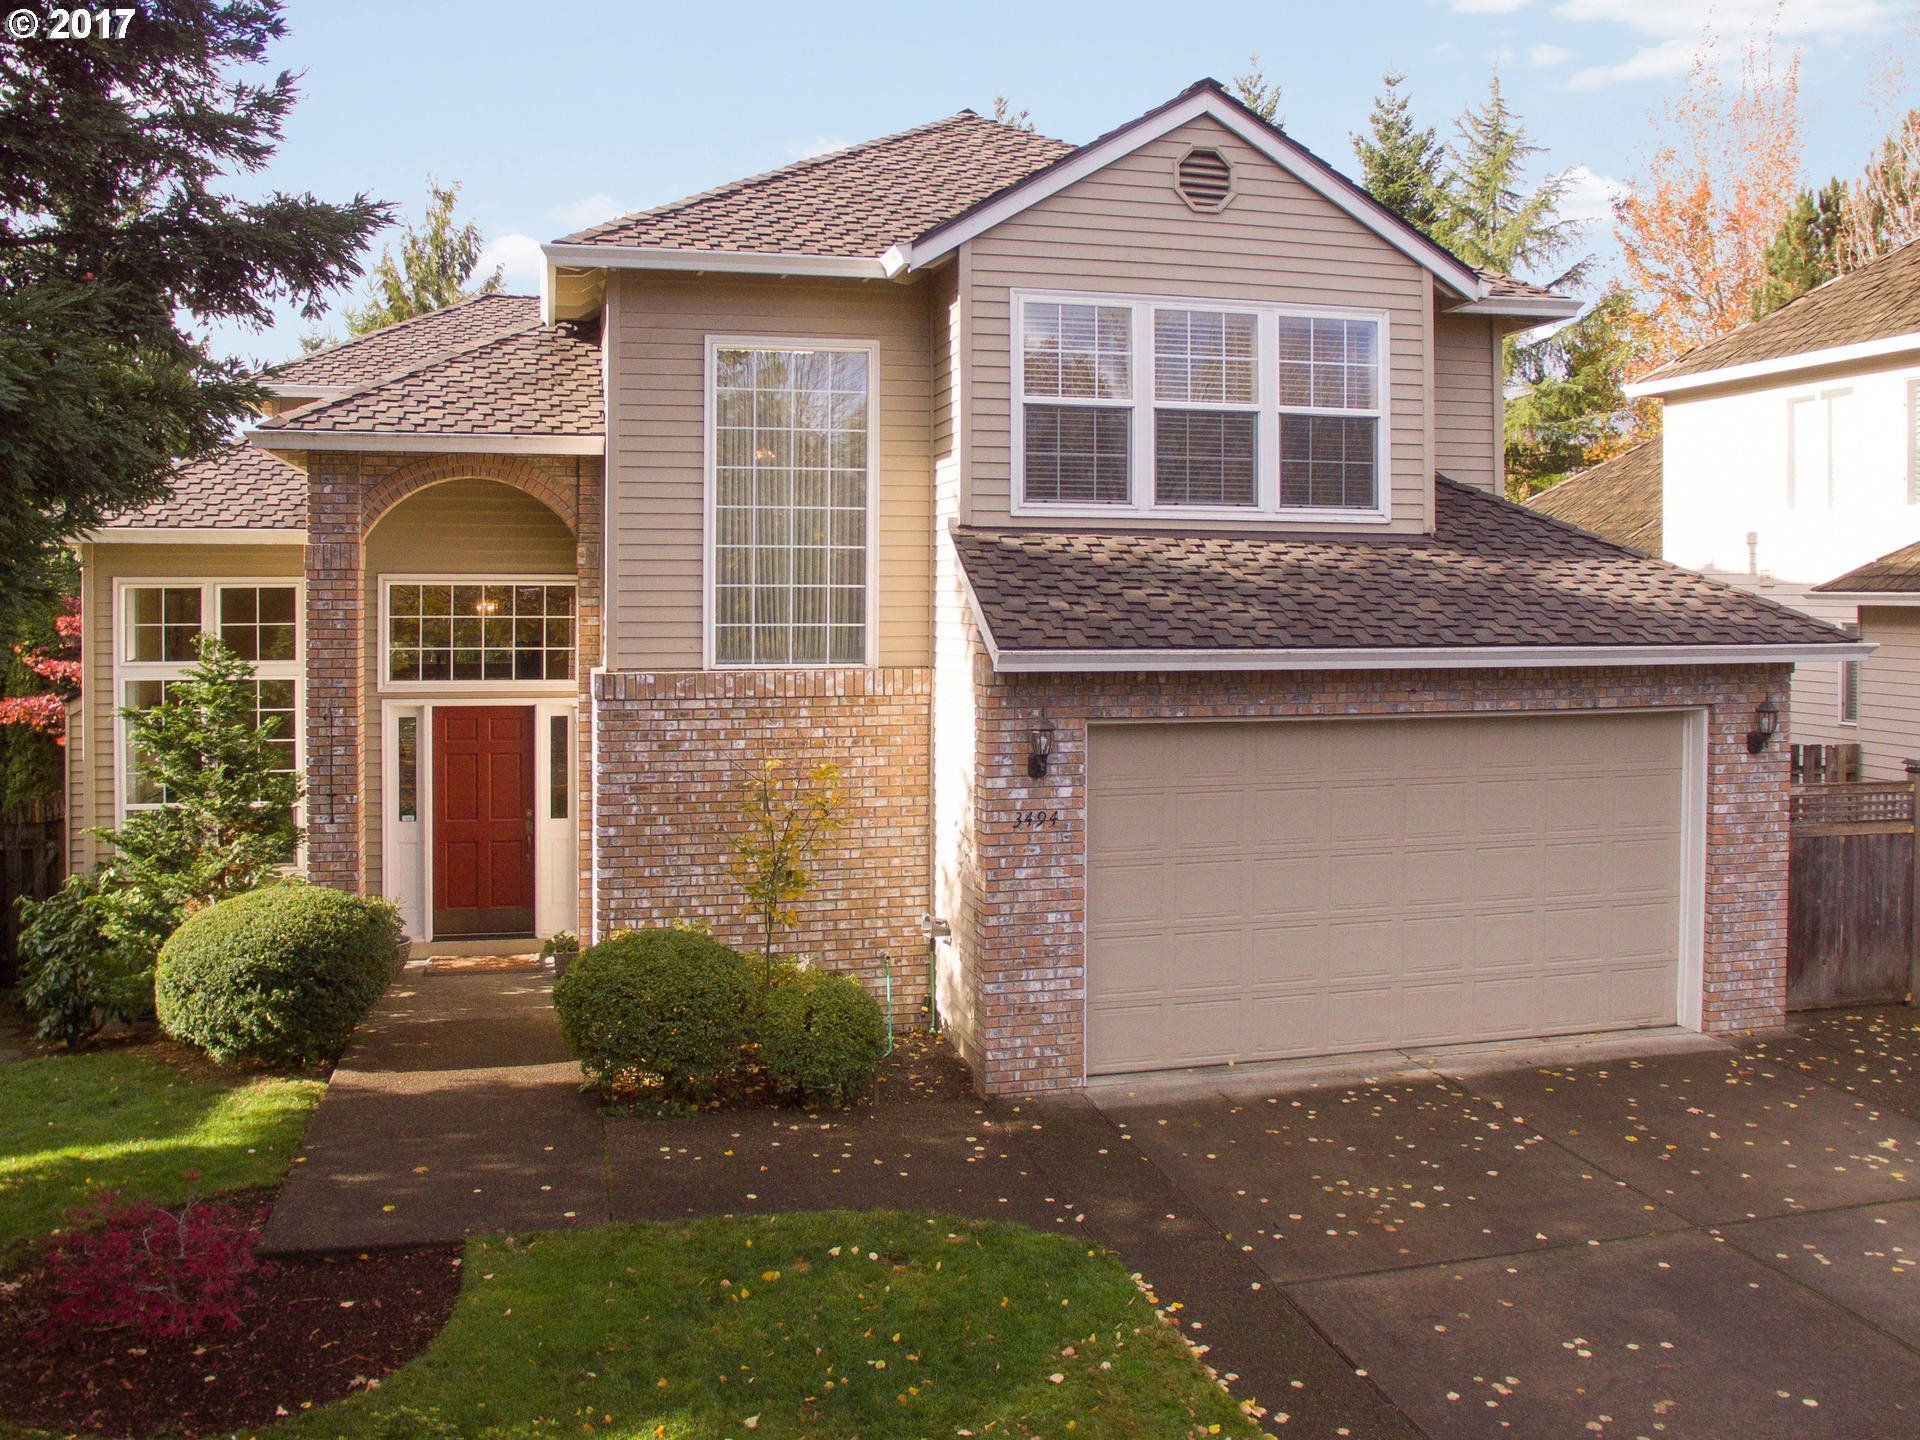 3494 CHELAN DR, West Linn, OR 97068